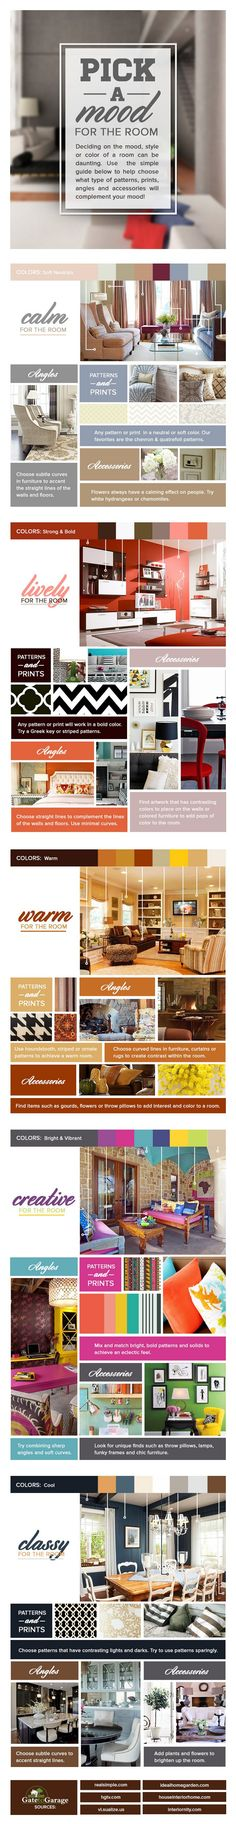 How to Effortlessly Build a Certain Mood for Your Room [Infographic] - http://freshome.com/2013/09/26/how-to-effortlessly-pick-a-mood-for-your-room-infographic/